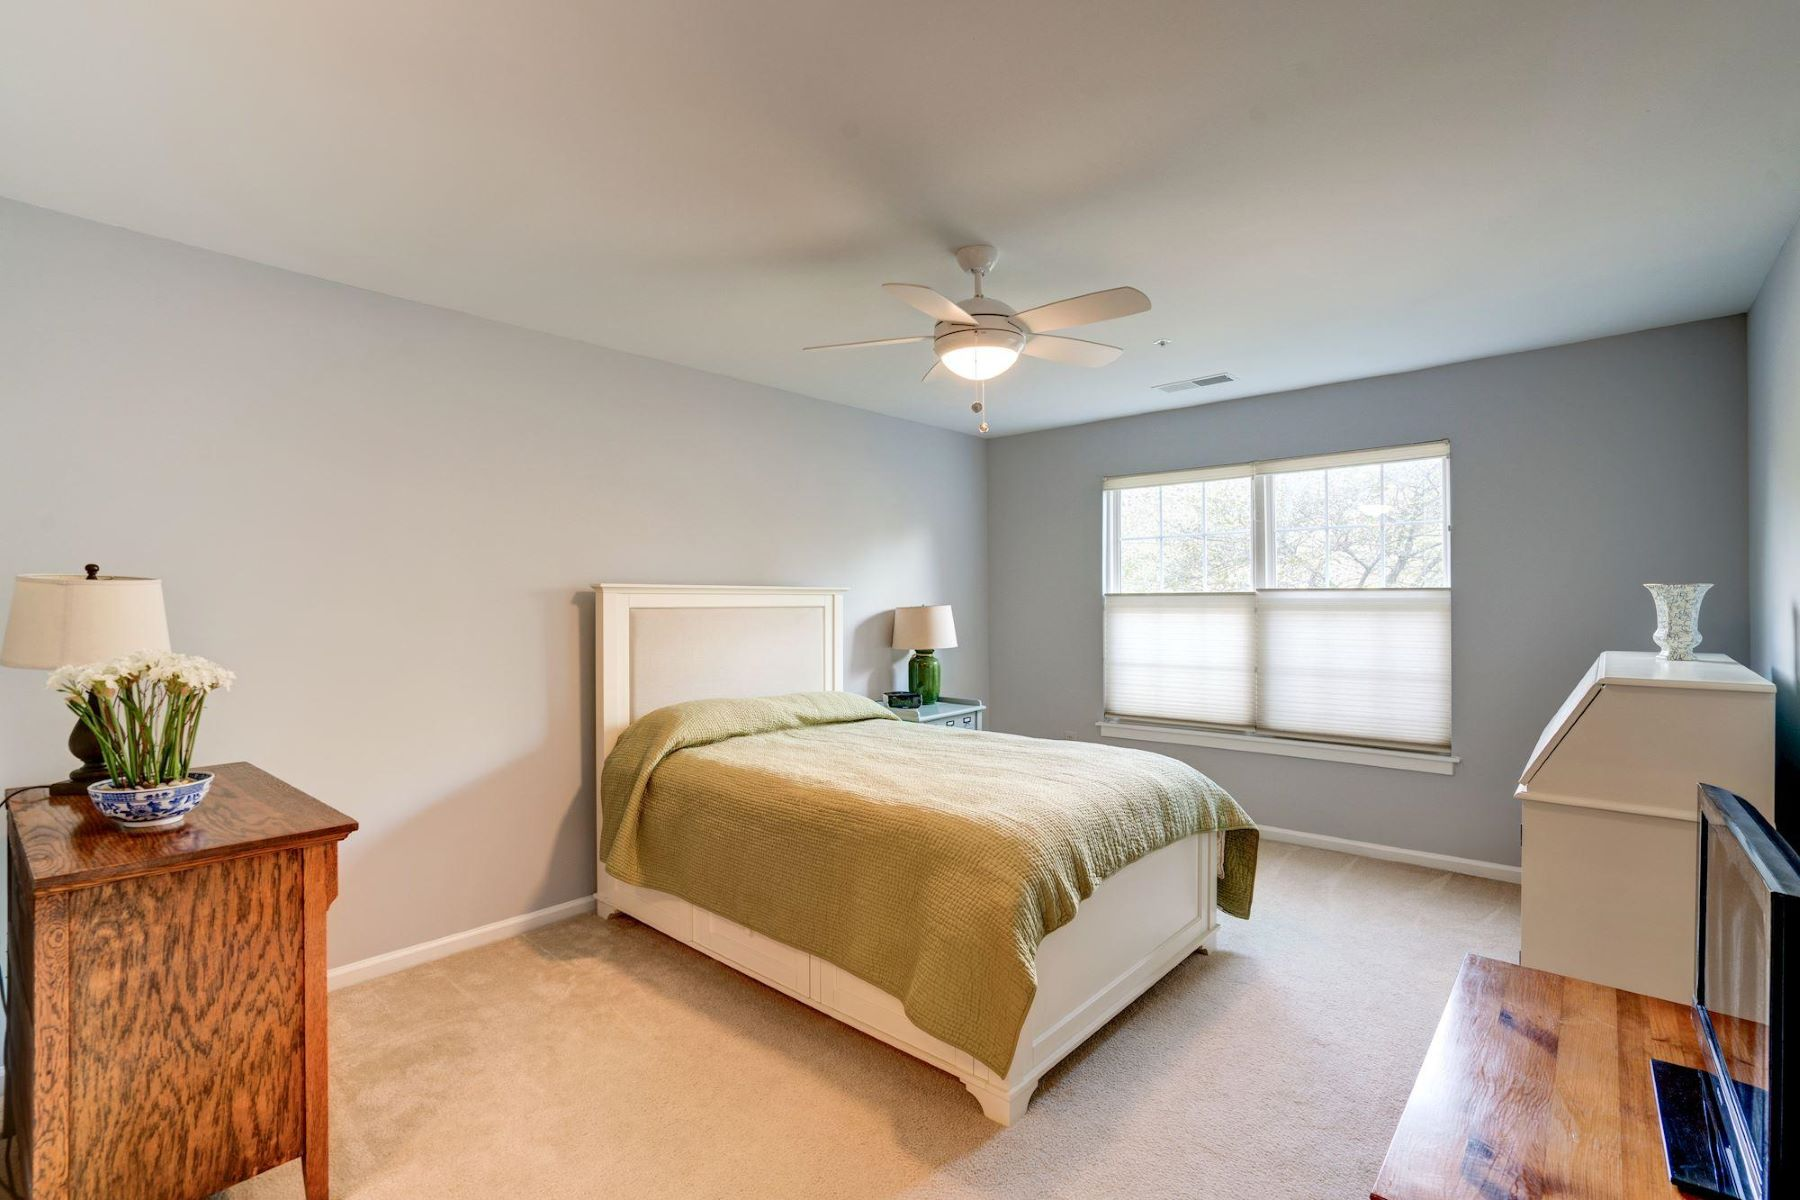 Additional photo for property listing at 6109 Wigmore Ln #d 6109 Wigmore Ln #d Alexandria, Virginia 22315 United States